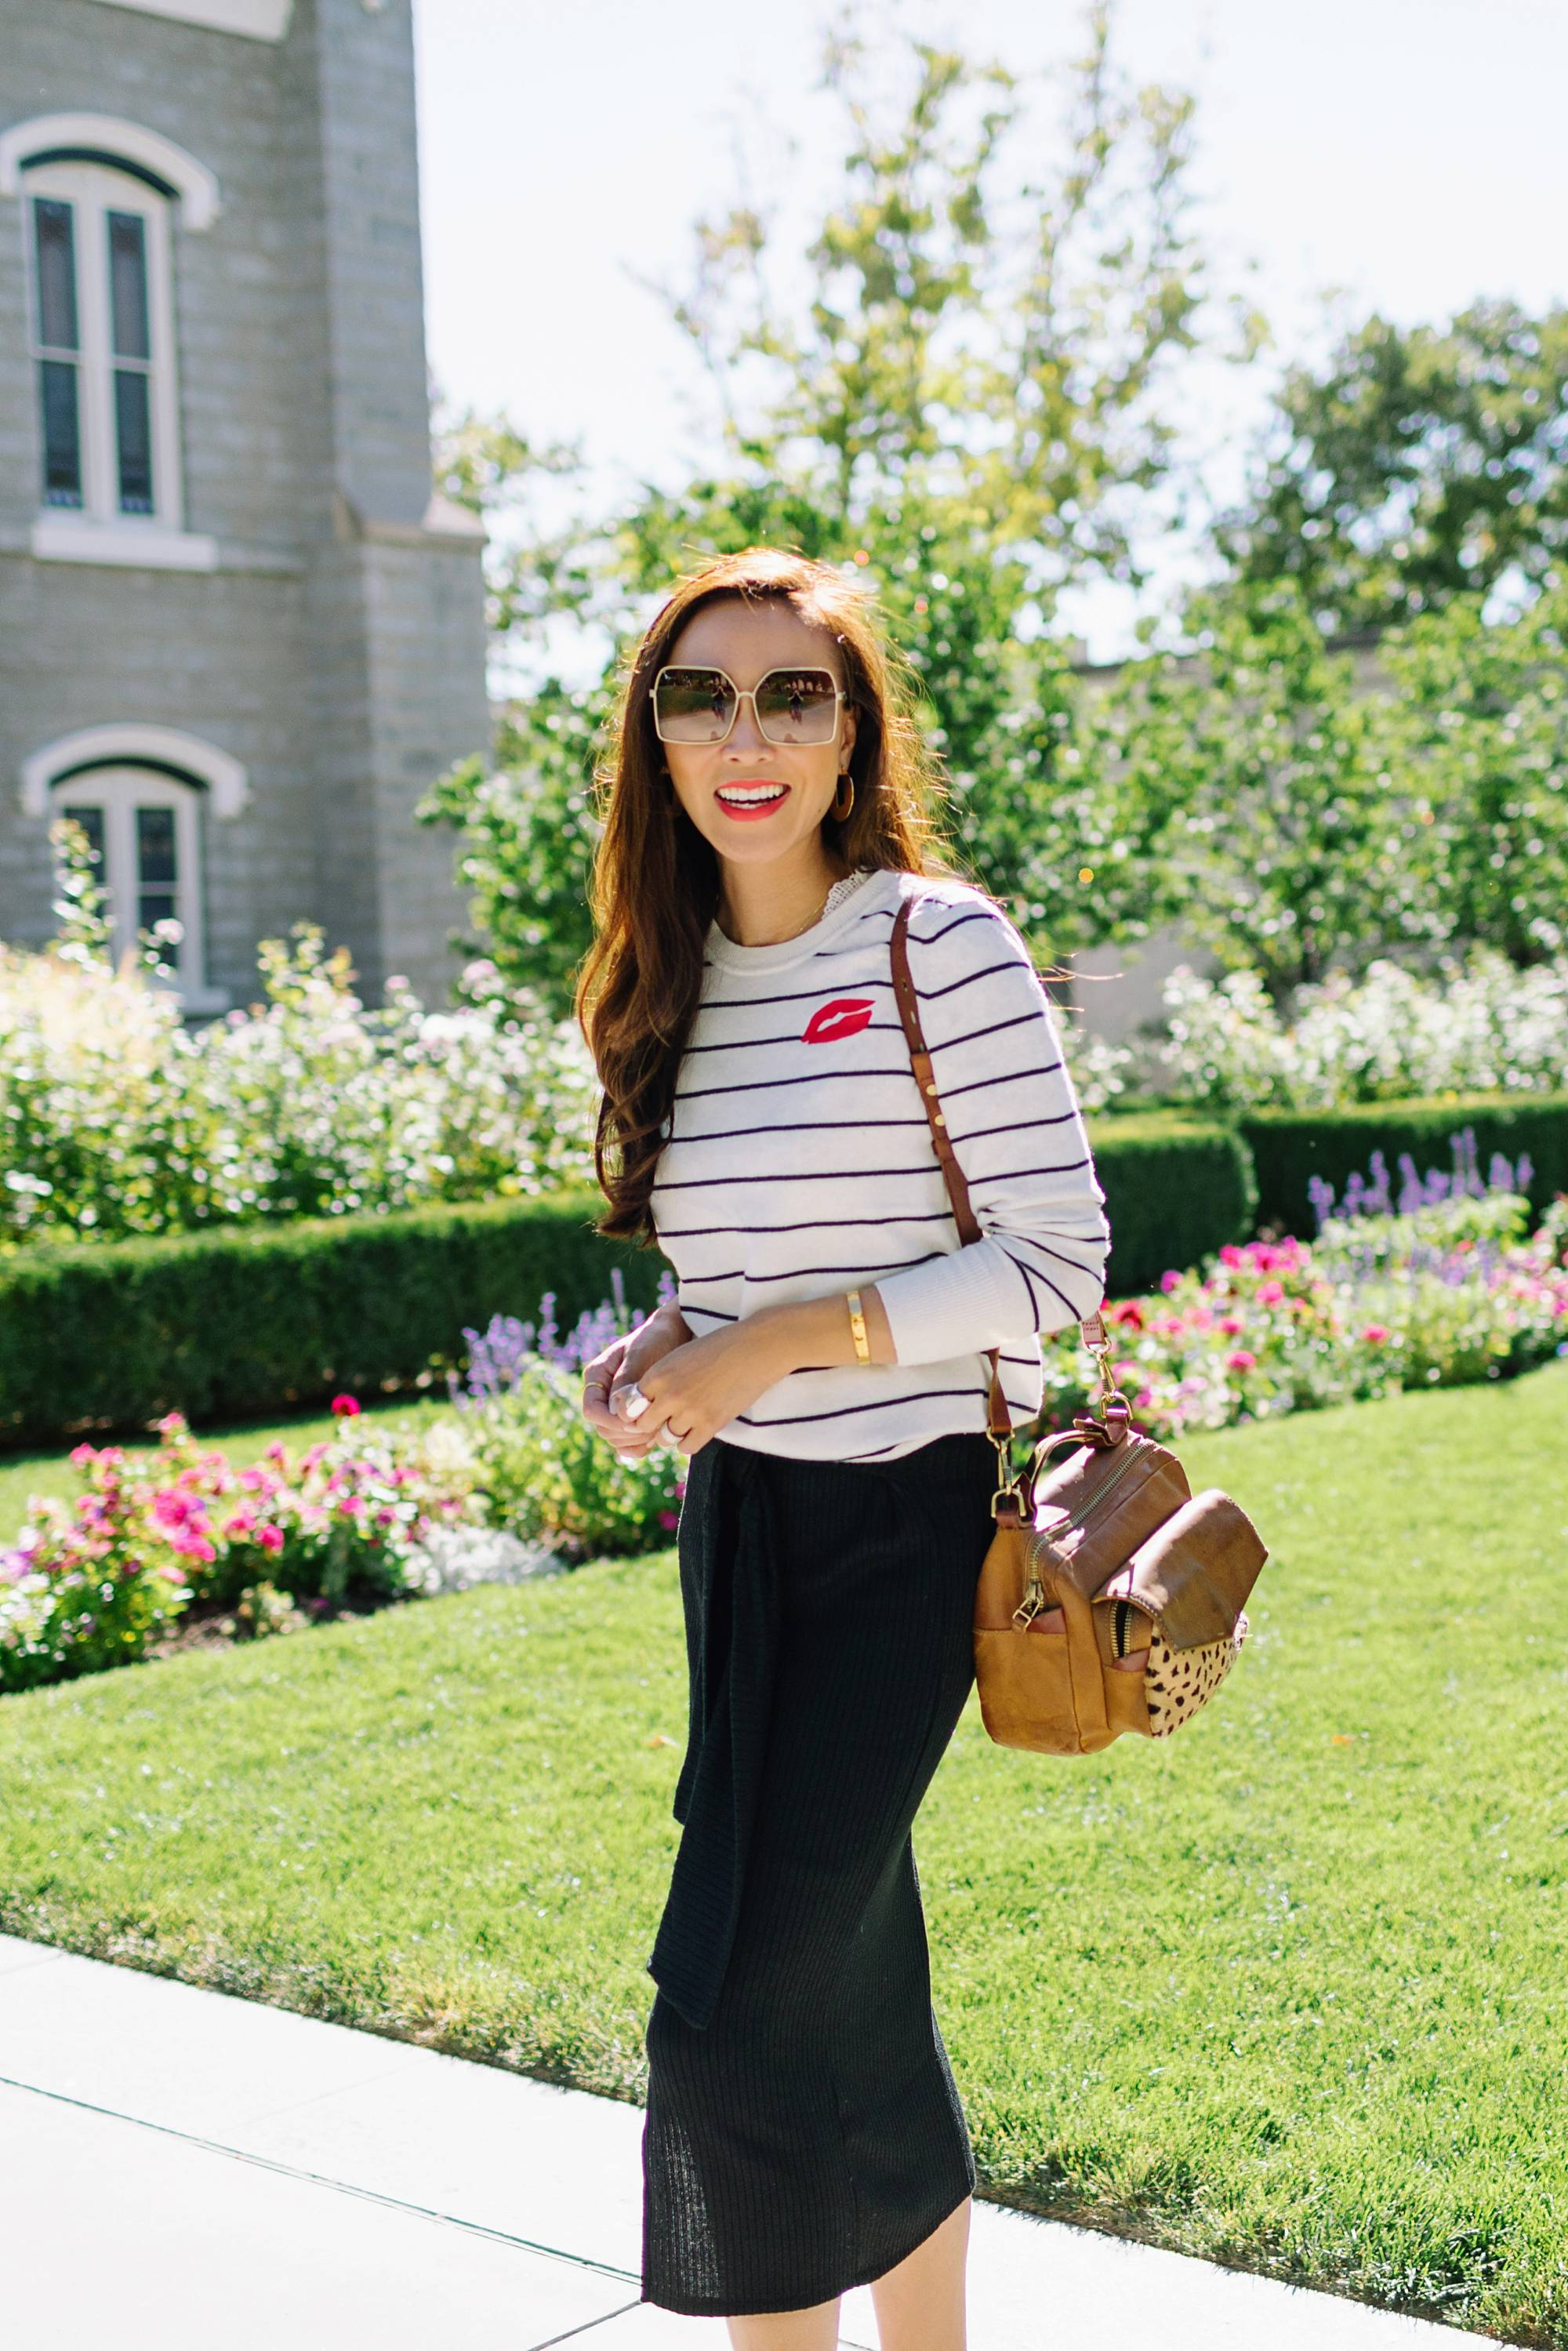 wearing black white stripe sweater banana republic and knit skirt black on lifestyle fashion blogger Diana Elizabeth phoenix arizona and white sneakers